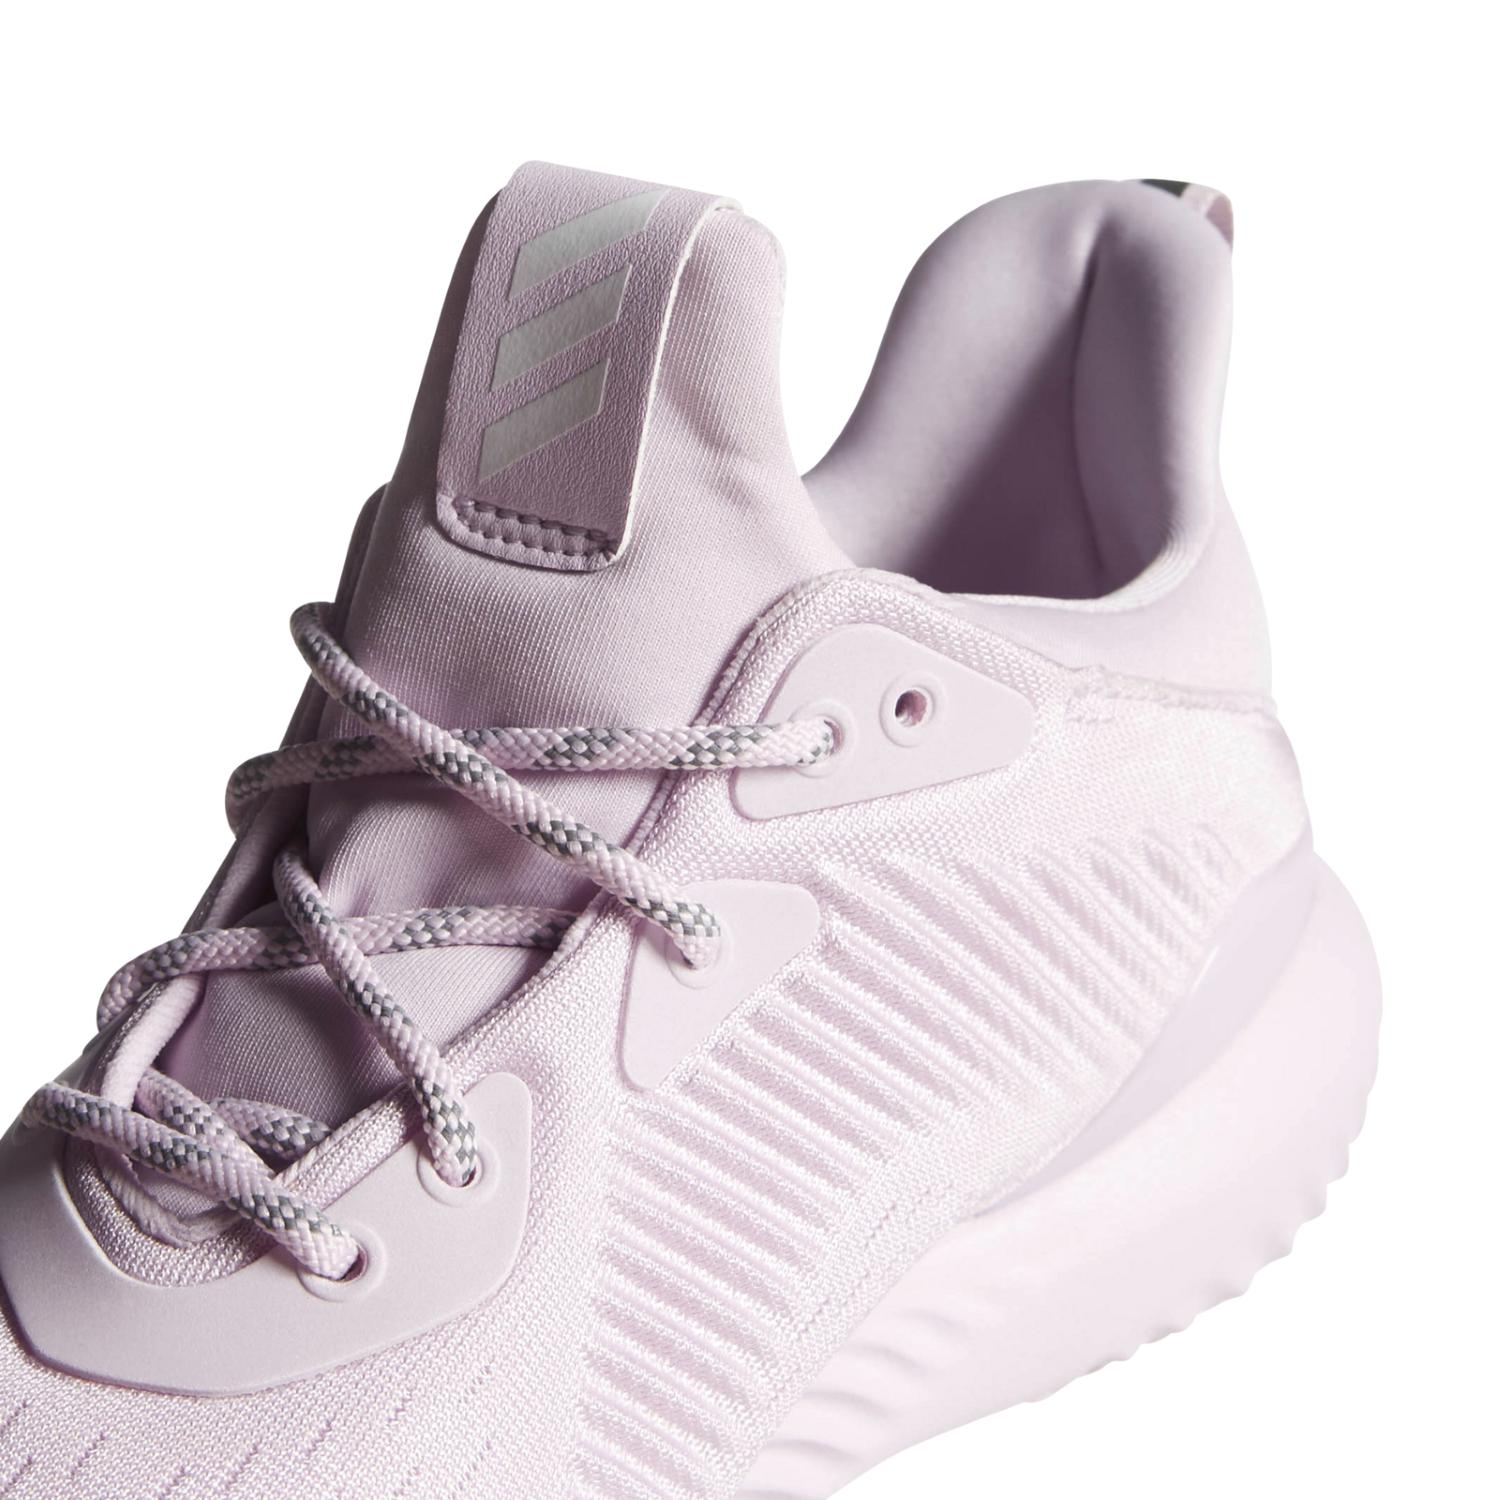 Lyst adidas Alphabounce 1 W in Pink